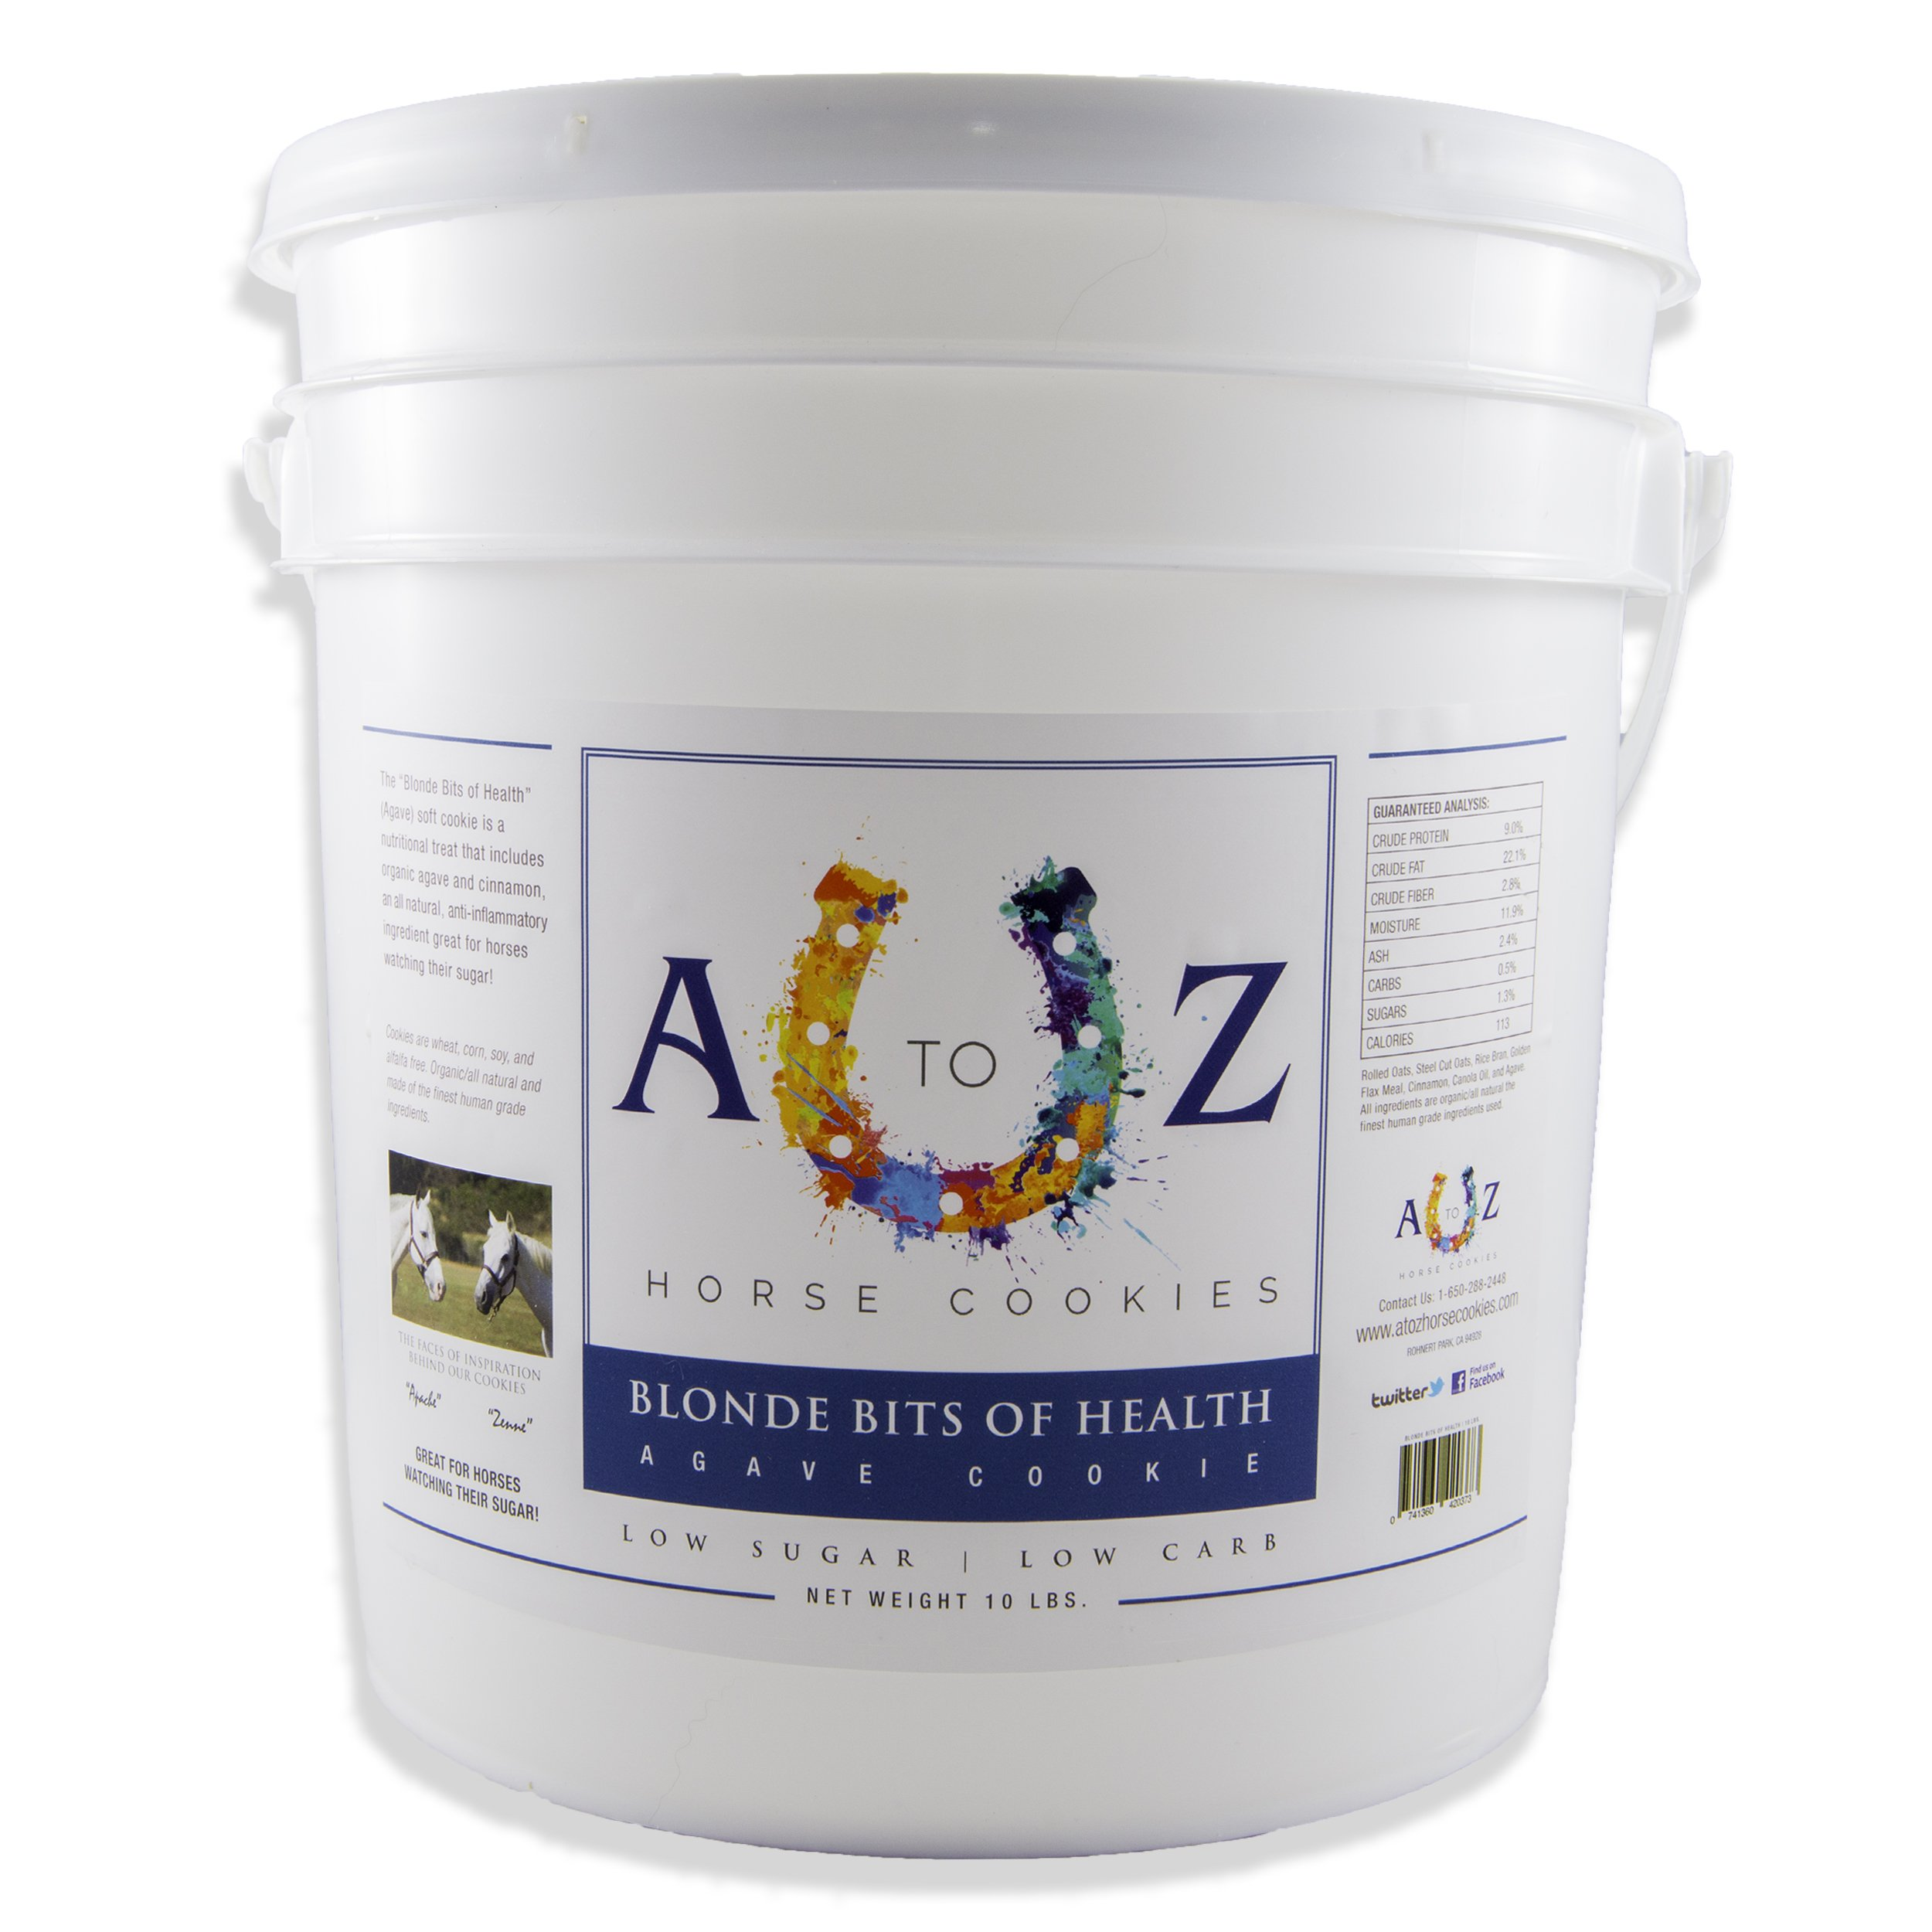 Horse Cookie Treat: Blond Bits Of Health Flavor by A - Z Horse Cookies, Low Carb Low Sugar Softer Treats, Organic, Great For All Horses And Excellent For Those With Metabolic Conditions, 10 lbs Pail